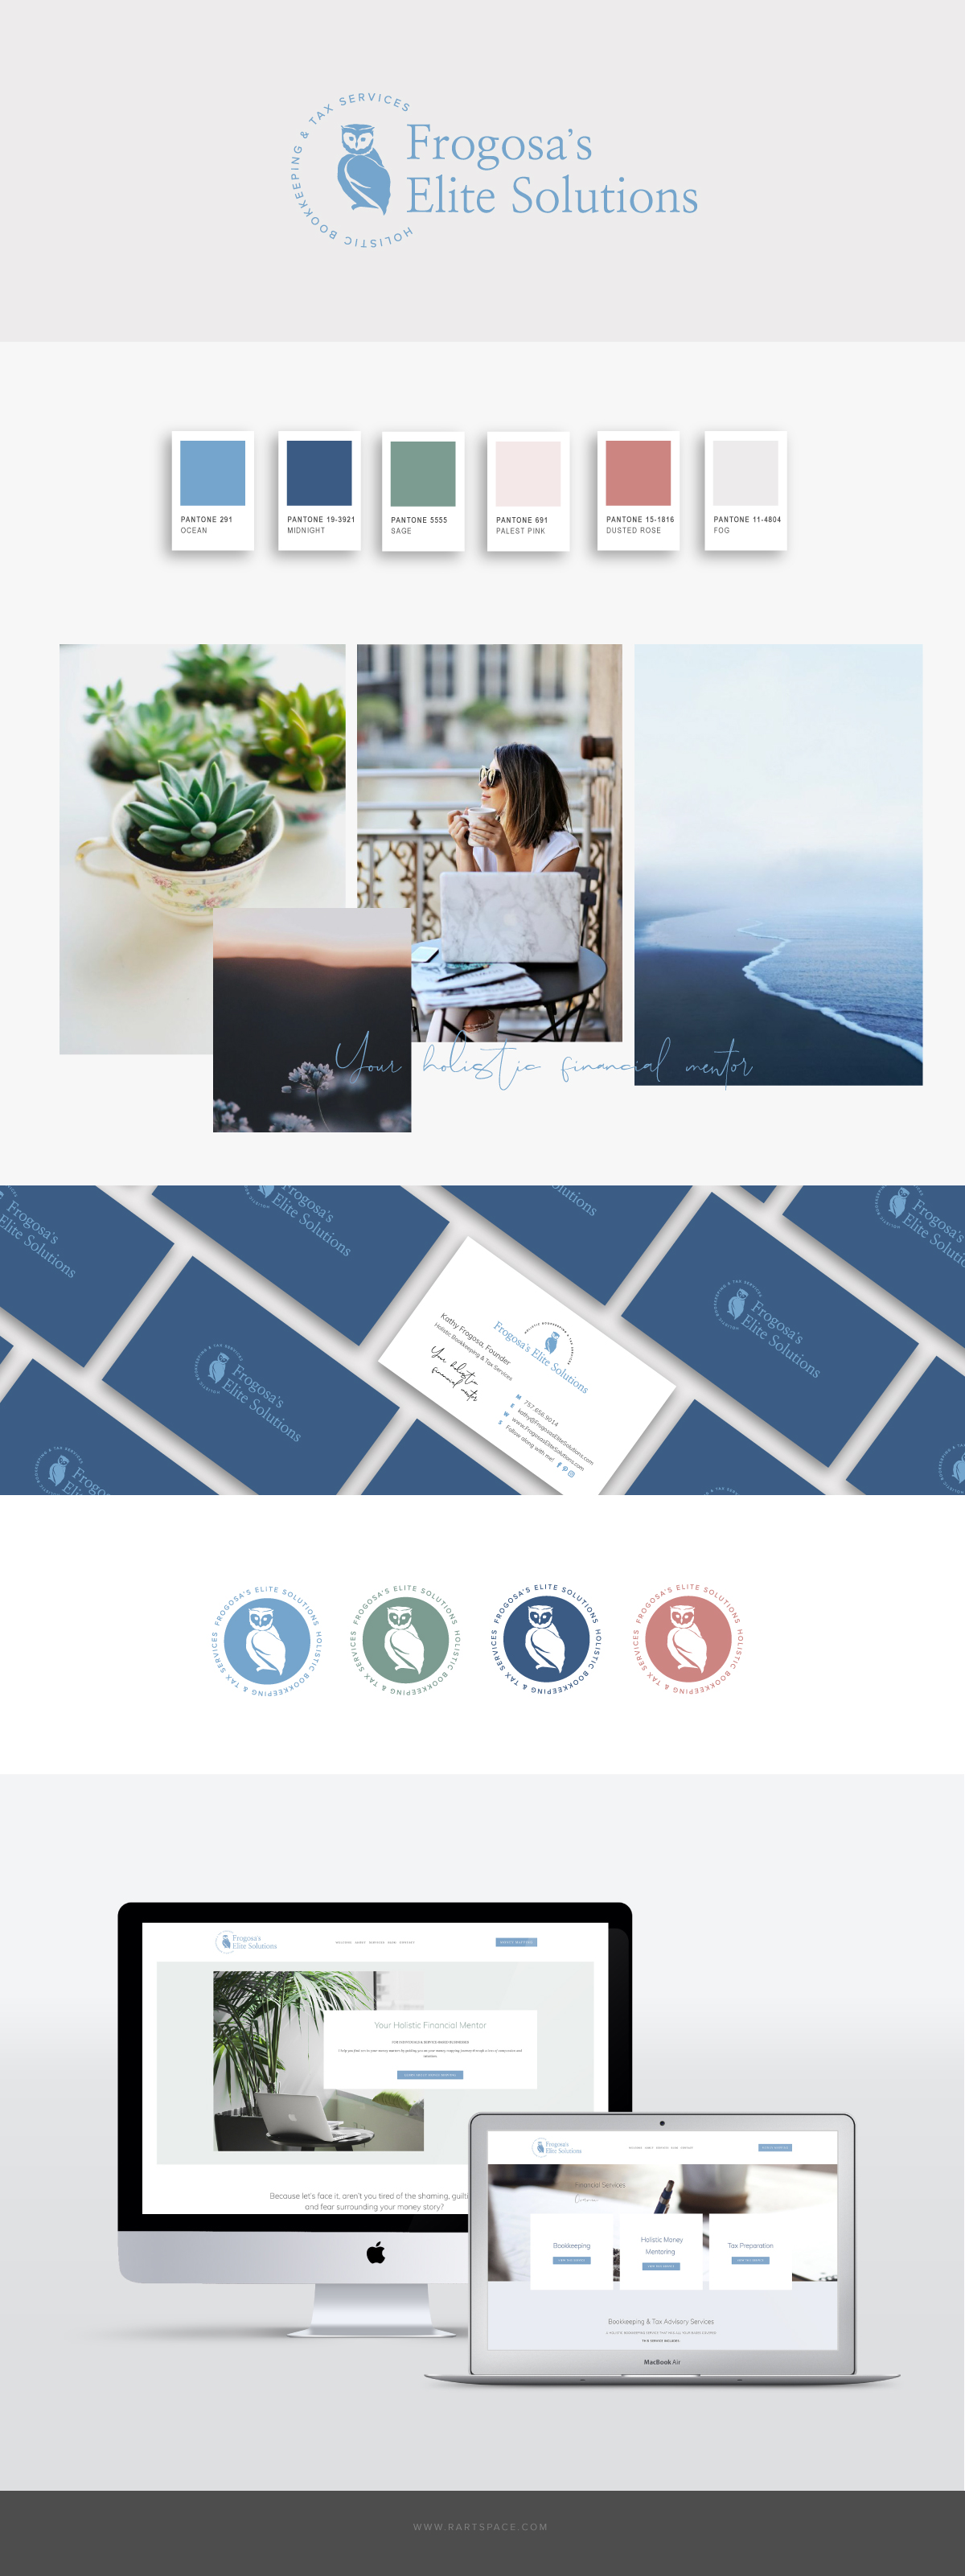 brand-and-website-for-bookkeeper-by-rartspace.jpg